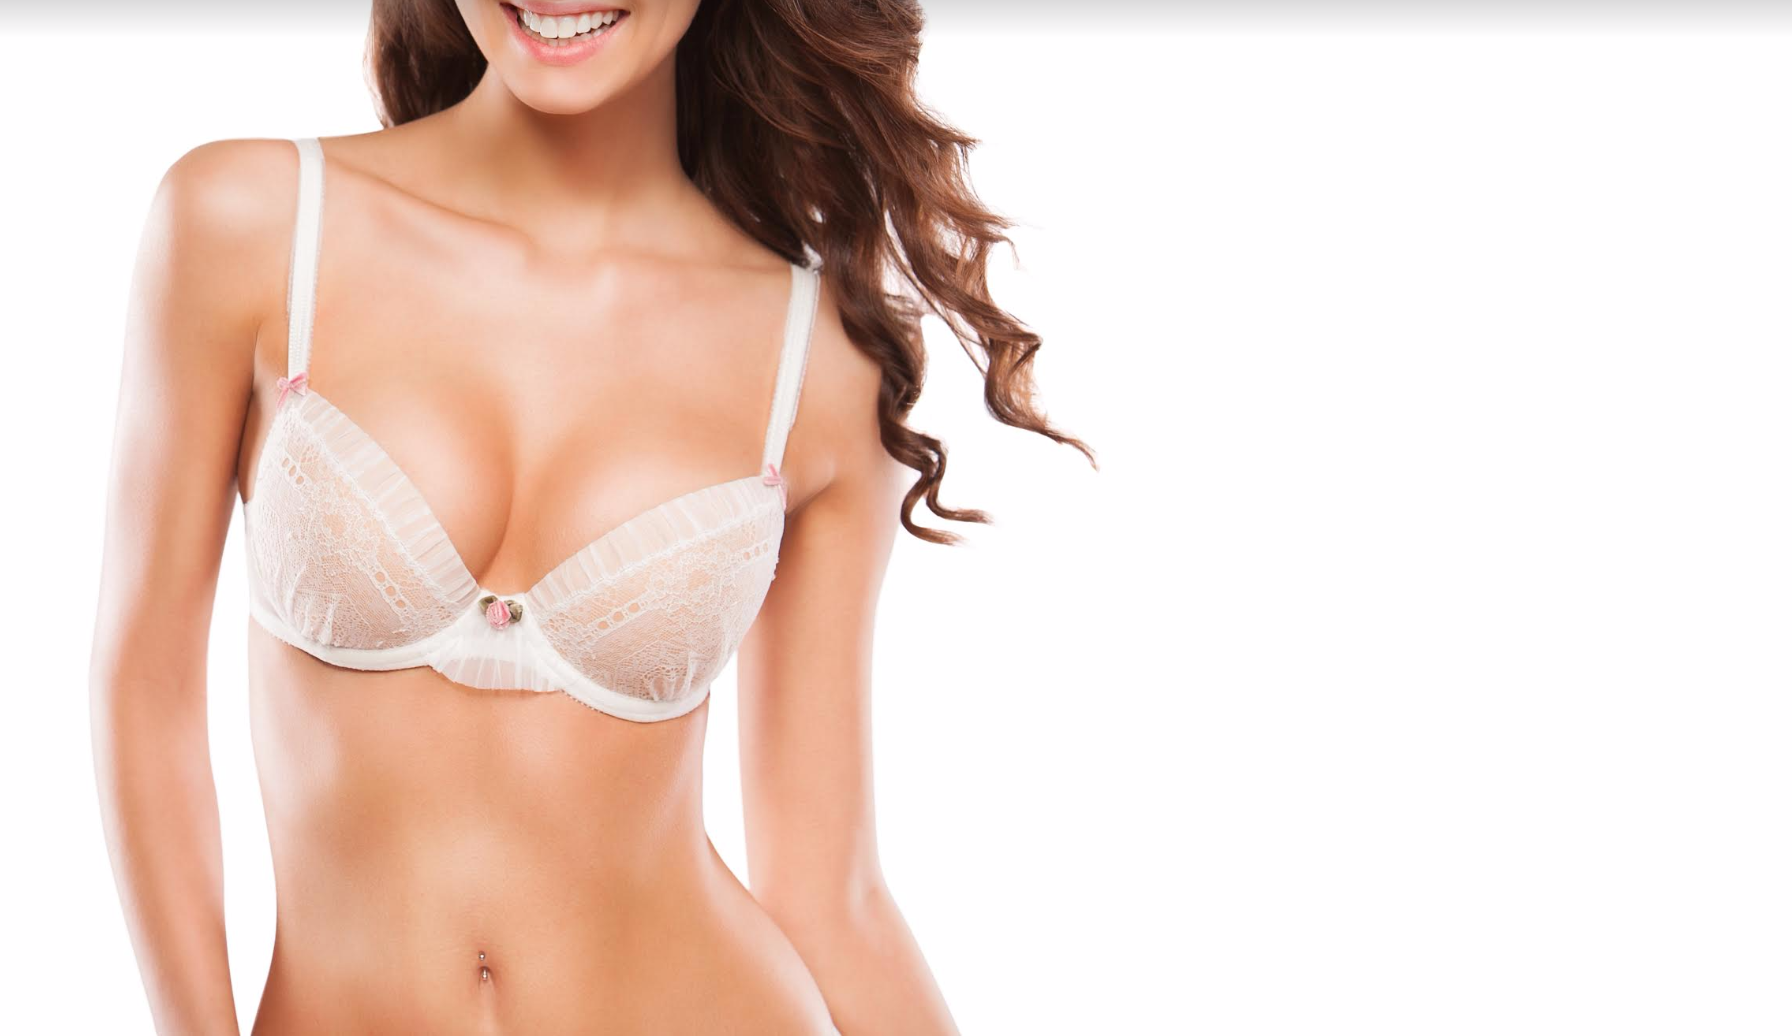 Natural breast augmentation at Criswell & Criswell